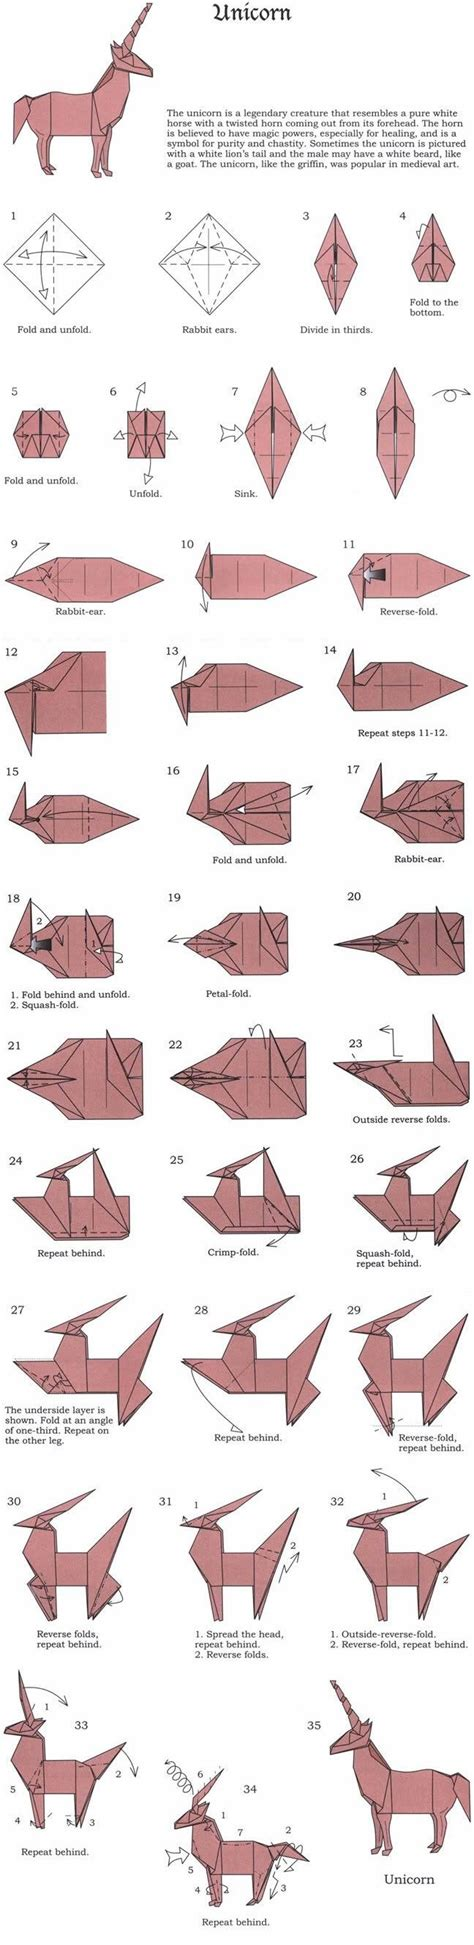 unicorn origami pattern origami unicorn 1 35 complete diagram things i love